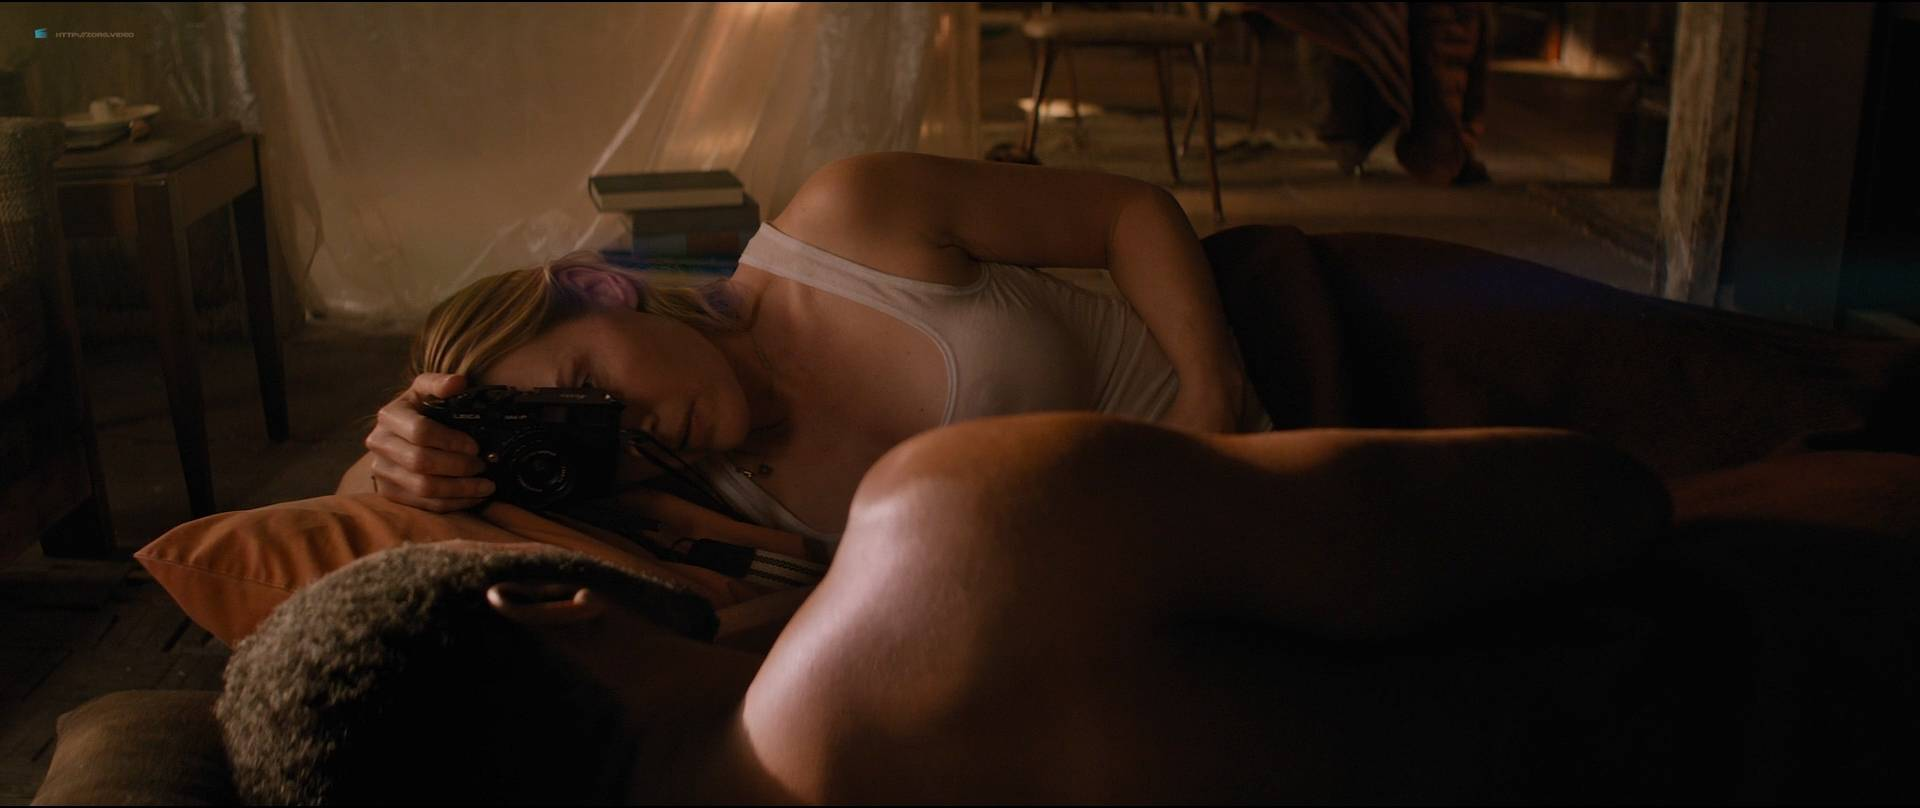 Kate-Winslet-hot-and-some-sex-The-Mountain-Between-Us-2017-HD-1080p-BluRay-11.jpg